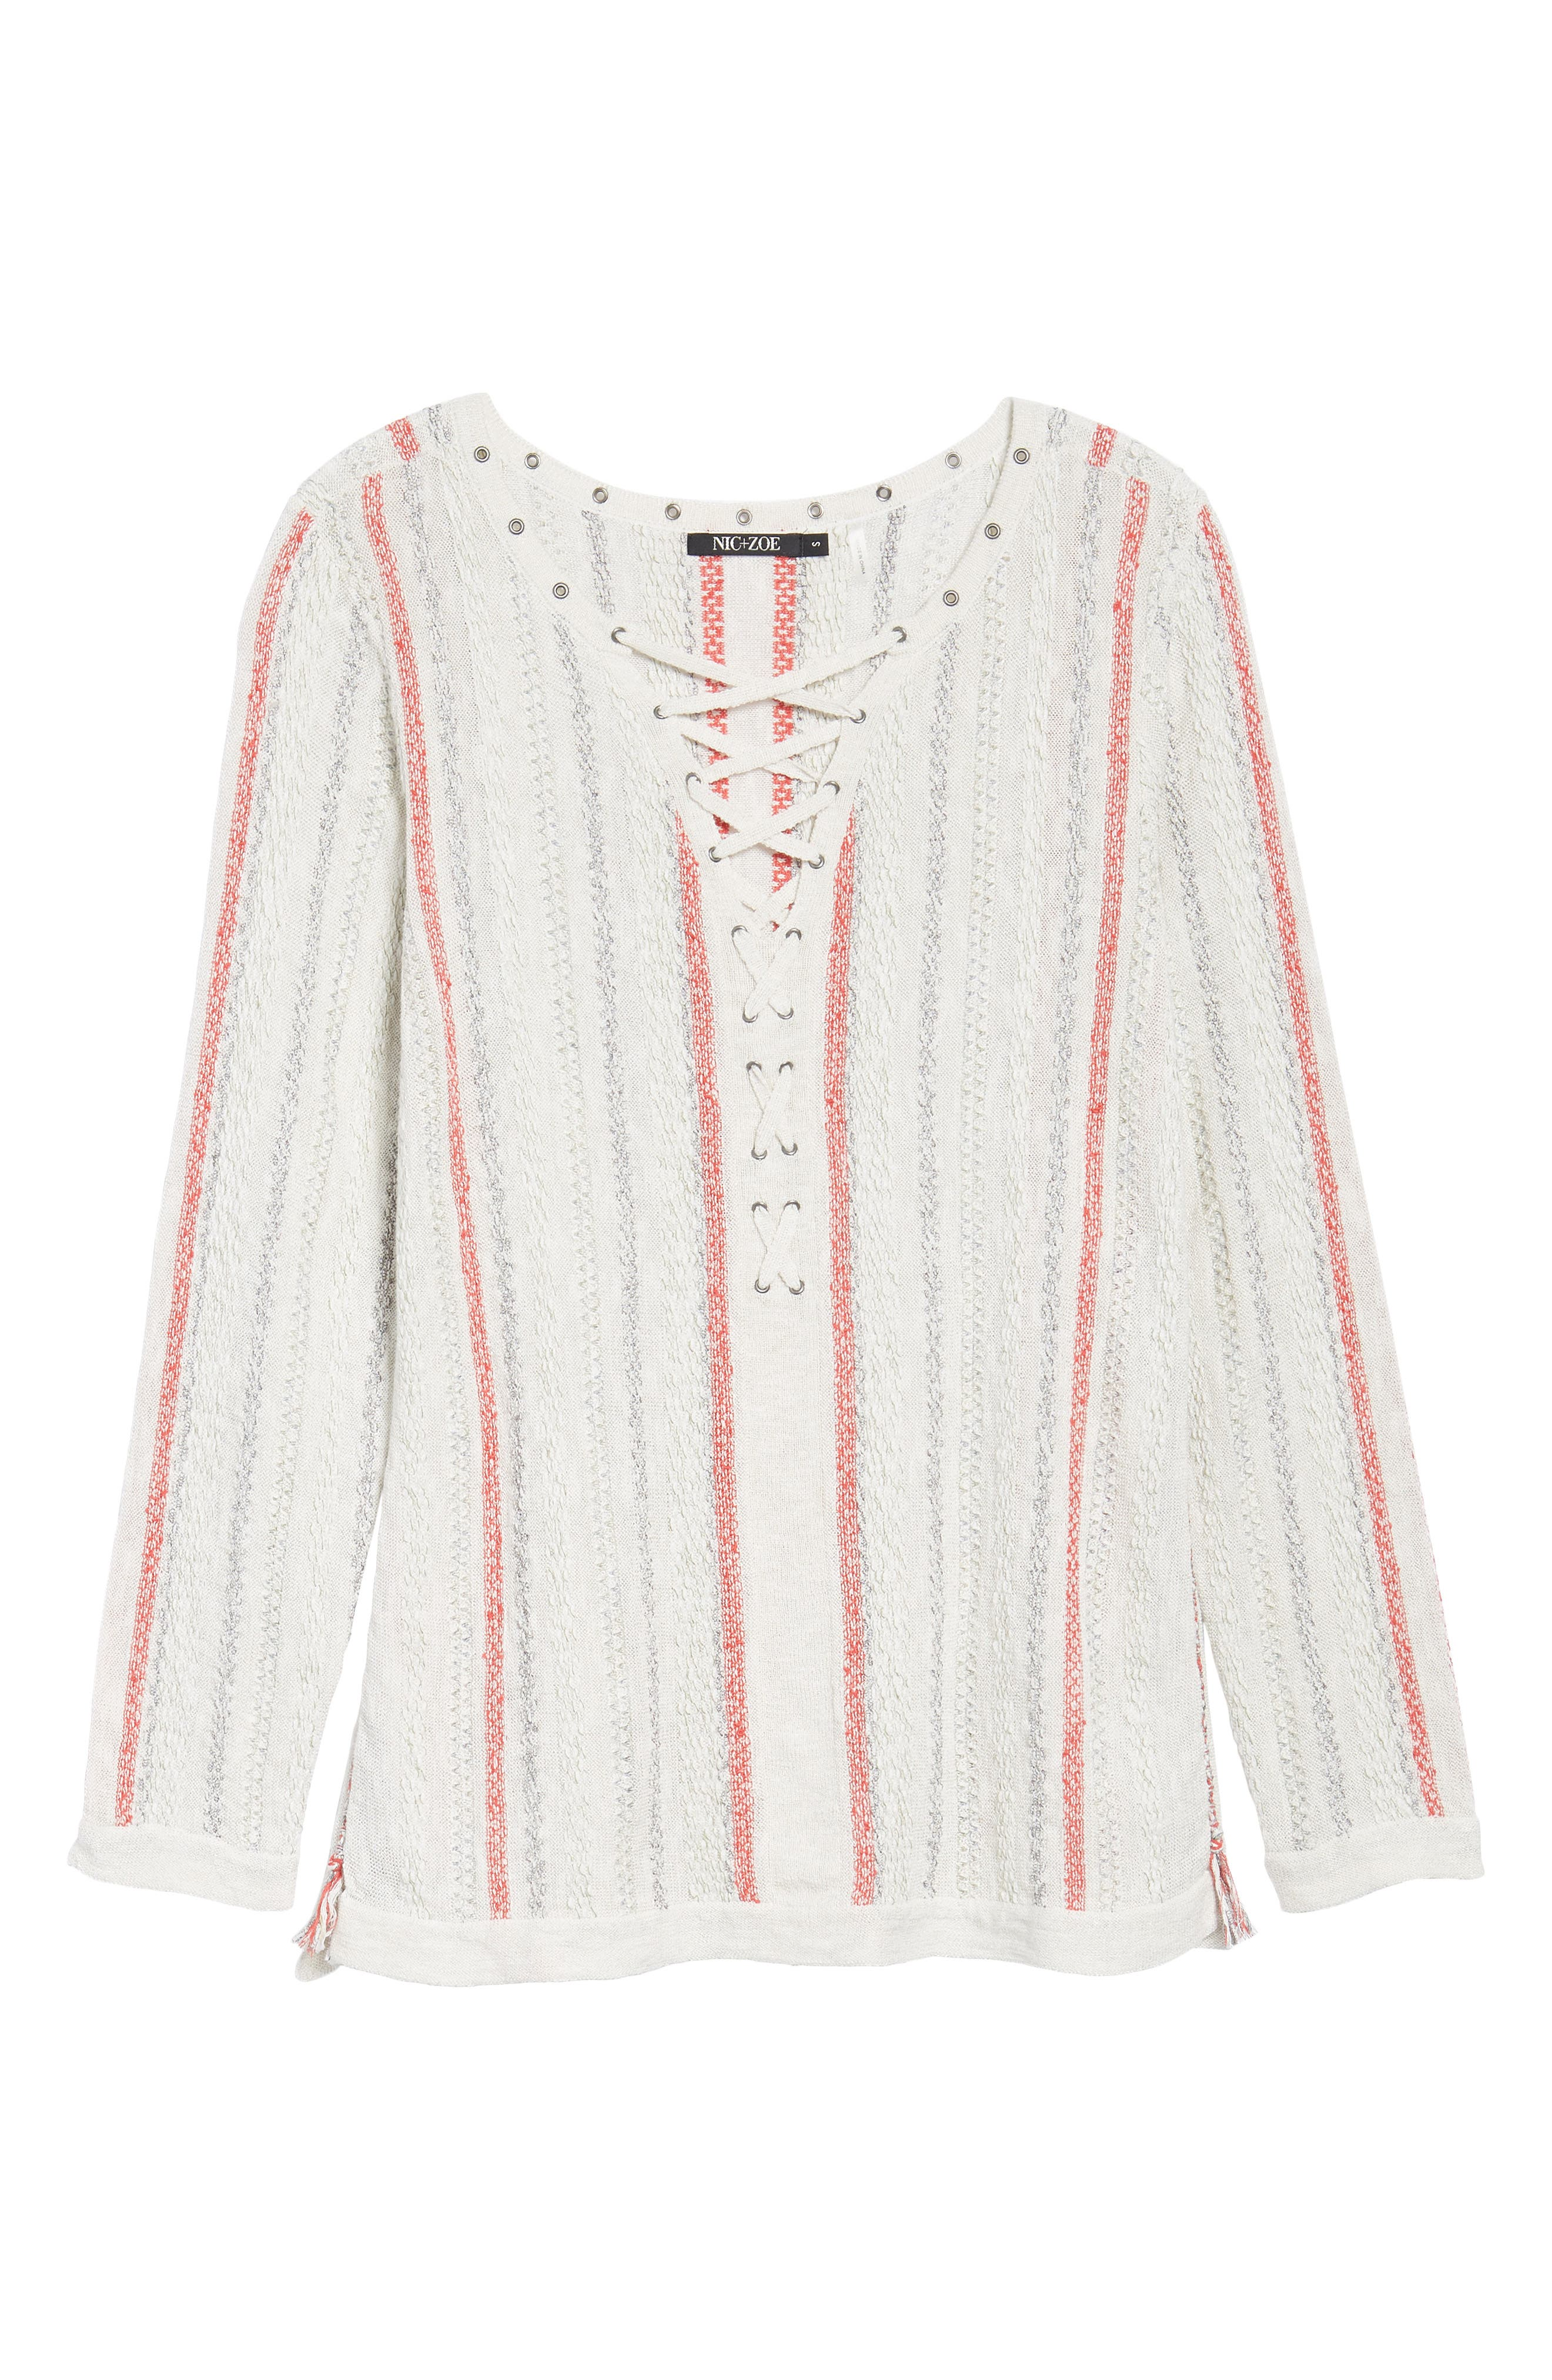 NIC + ZOE Cross Country Lace-Up Top,                             Alternate thumbnail 6, color,                             290